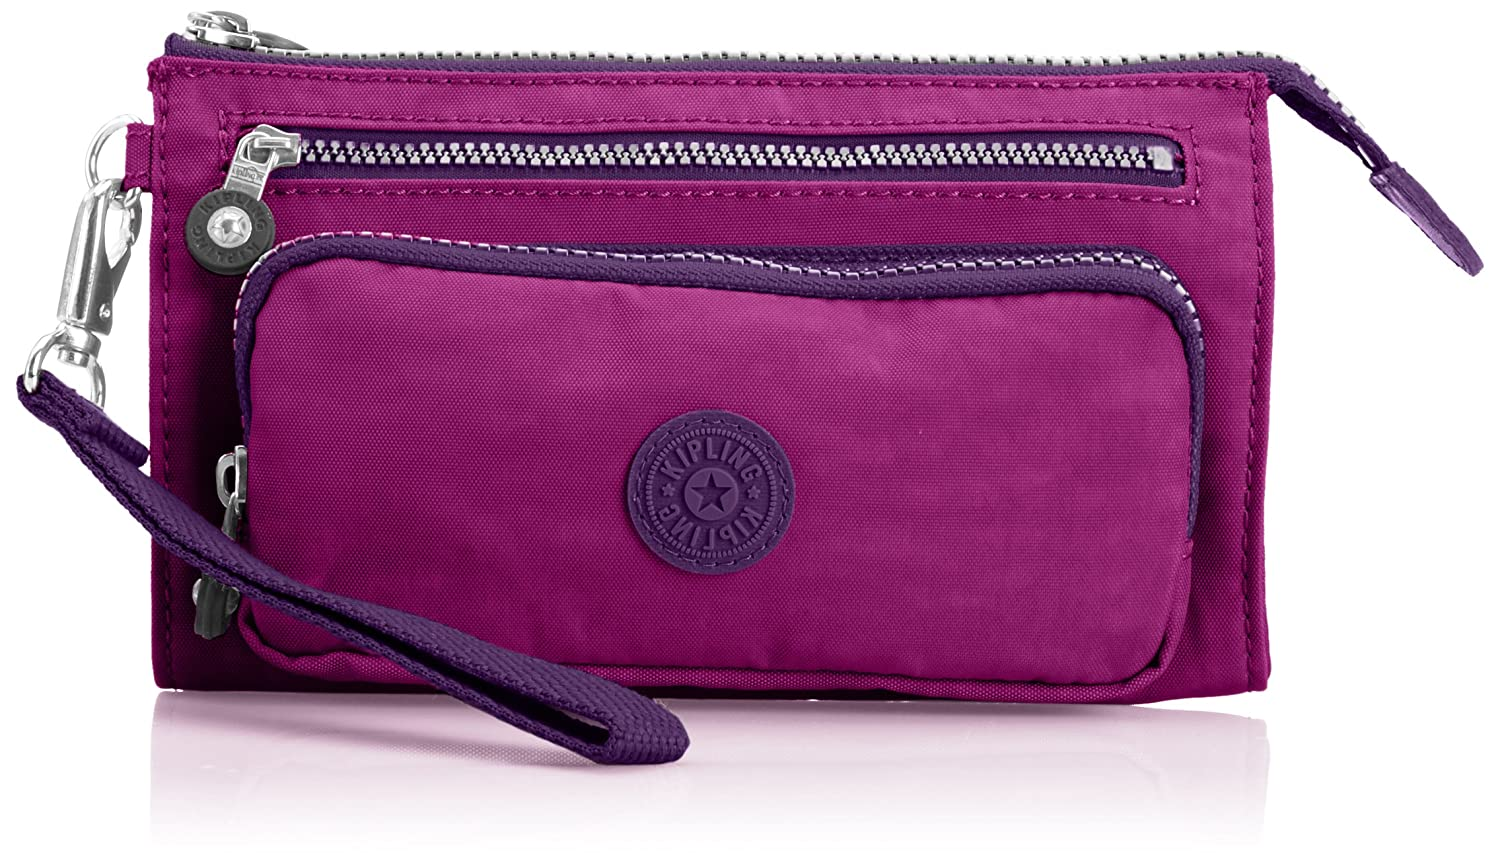 Kipling Women's Uki Purse K1334102O Purp Dahlia C: Amazon.co.uk: Shoes &  Bags